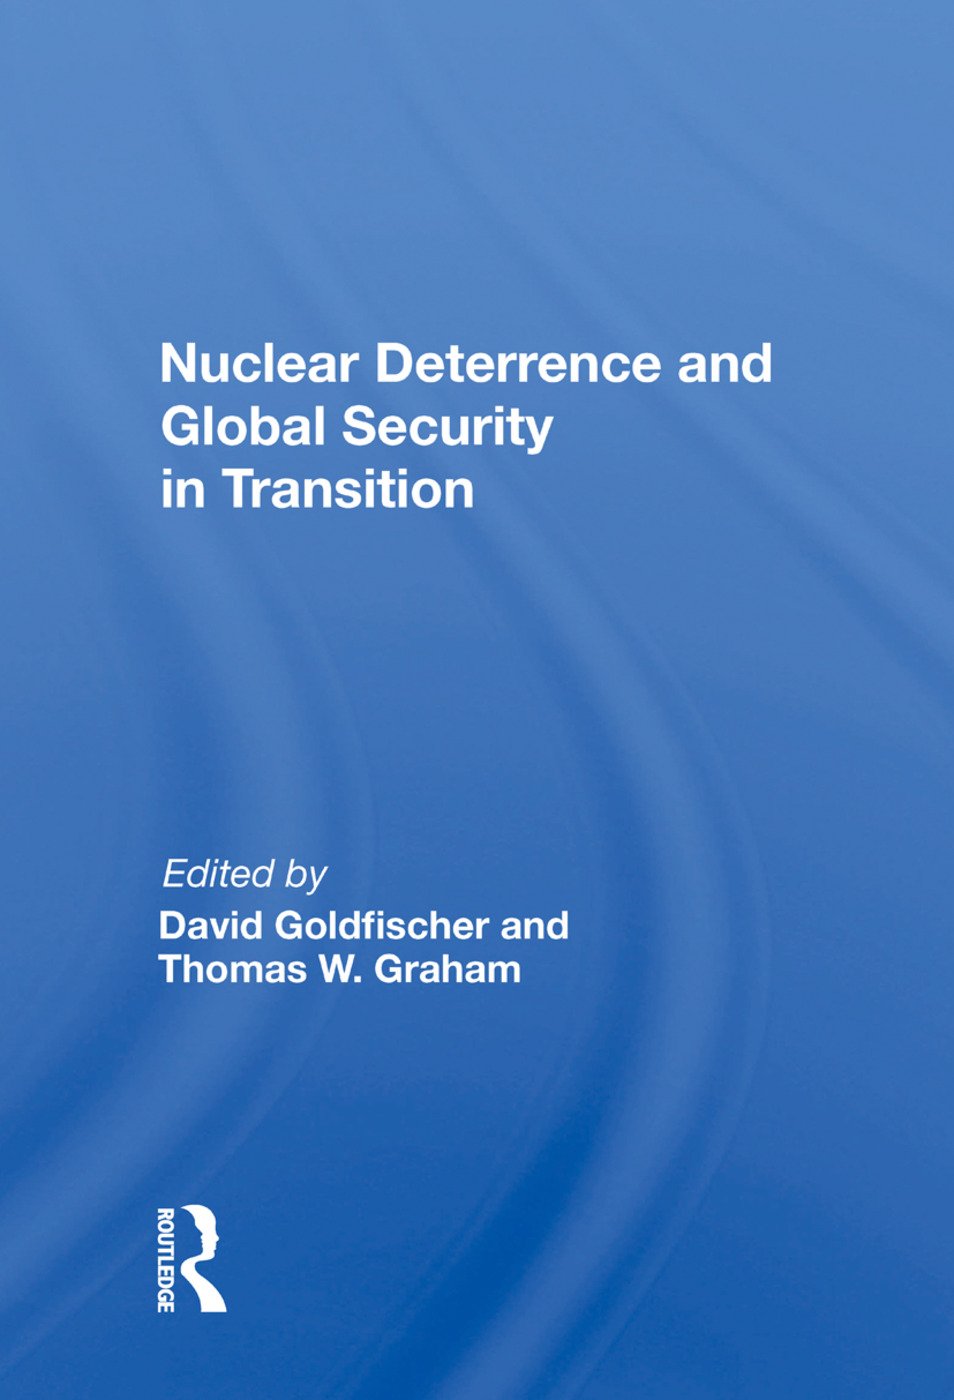 Nuclear Deterrence and Global Security in Transition